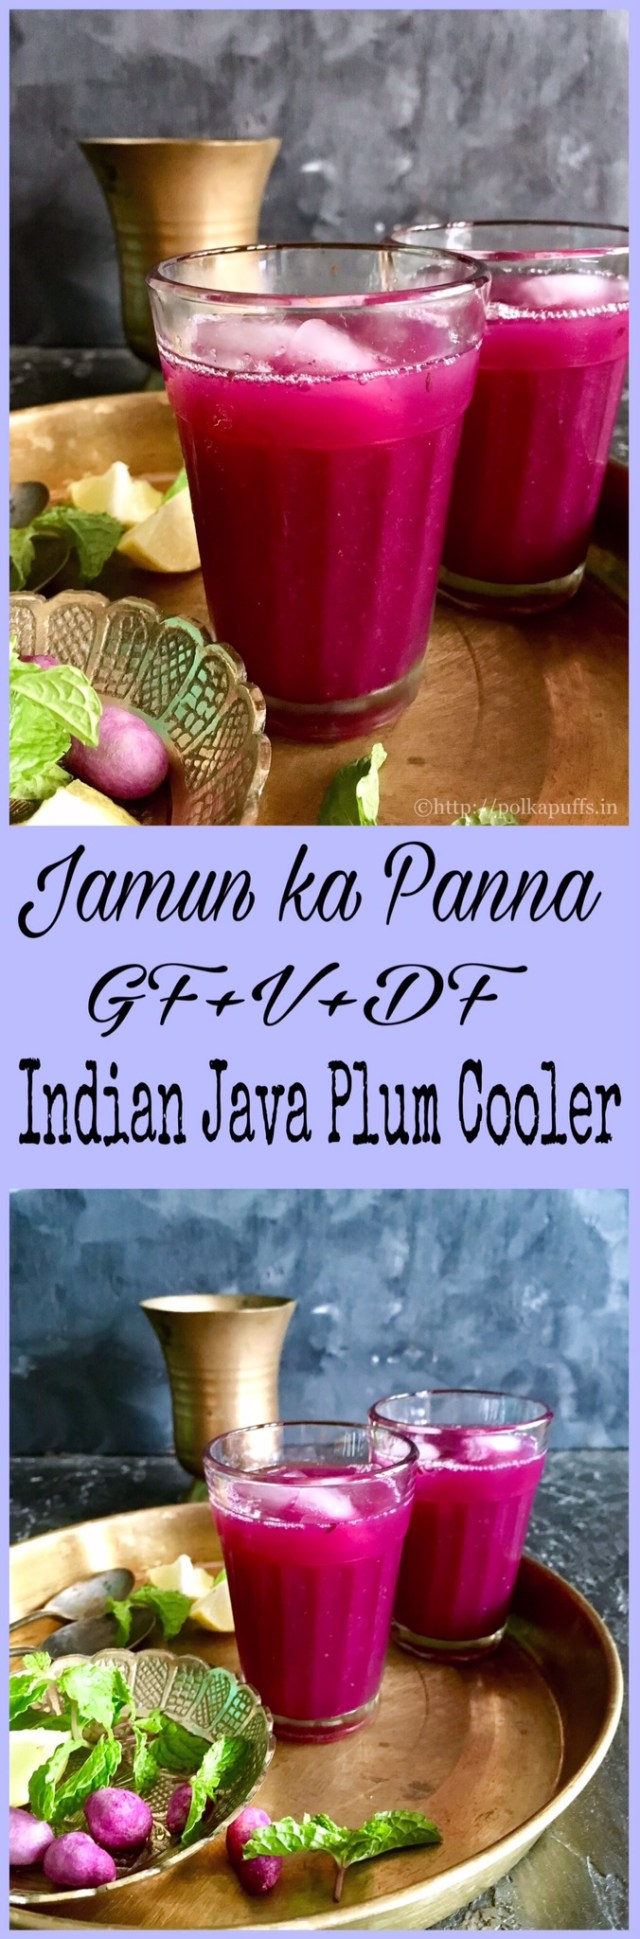 Indian Java Plum Cooler | Jamun ka Panna